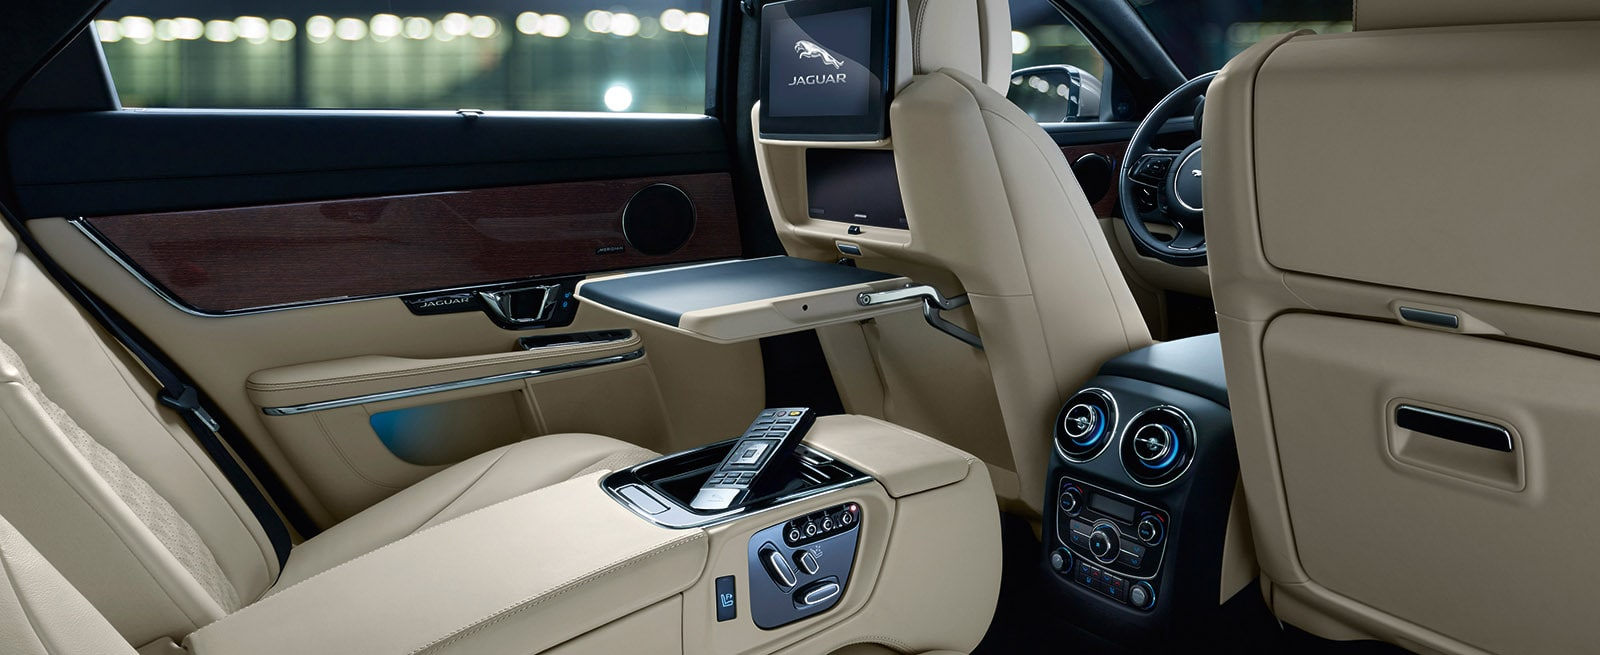 Rear Seats of Jaguar XJ with Tray Table and Arm Rest in Position